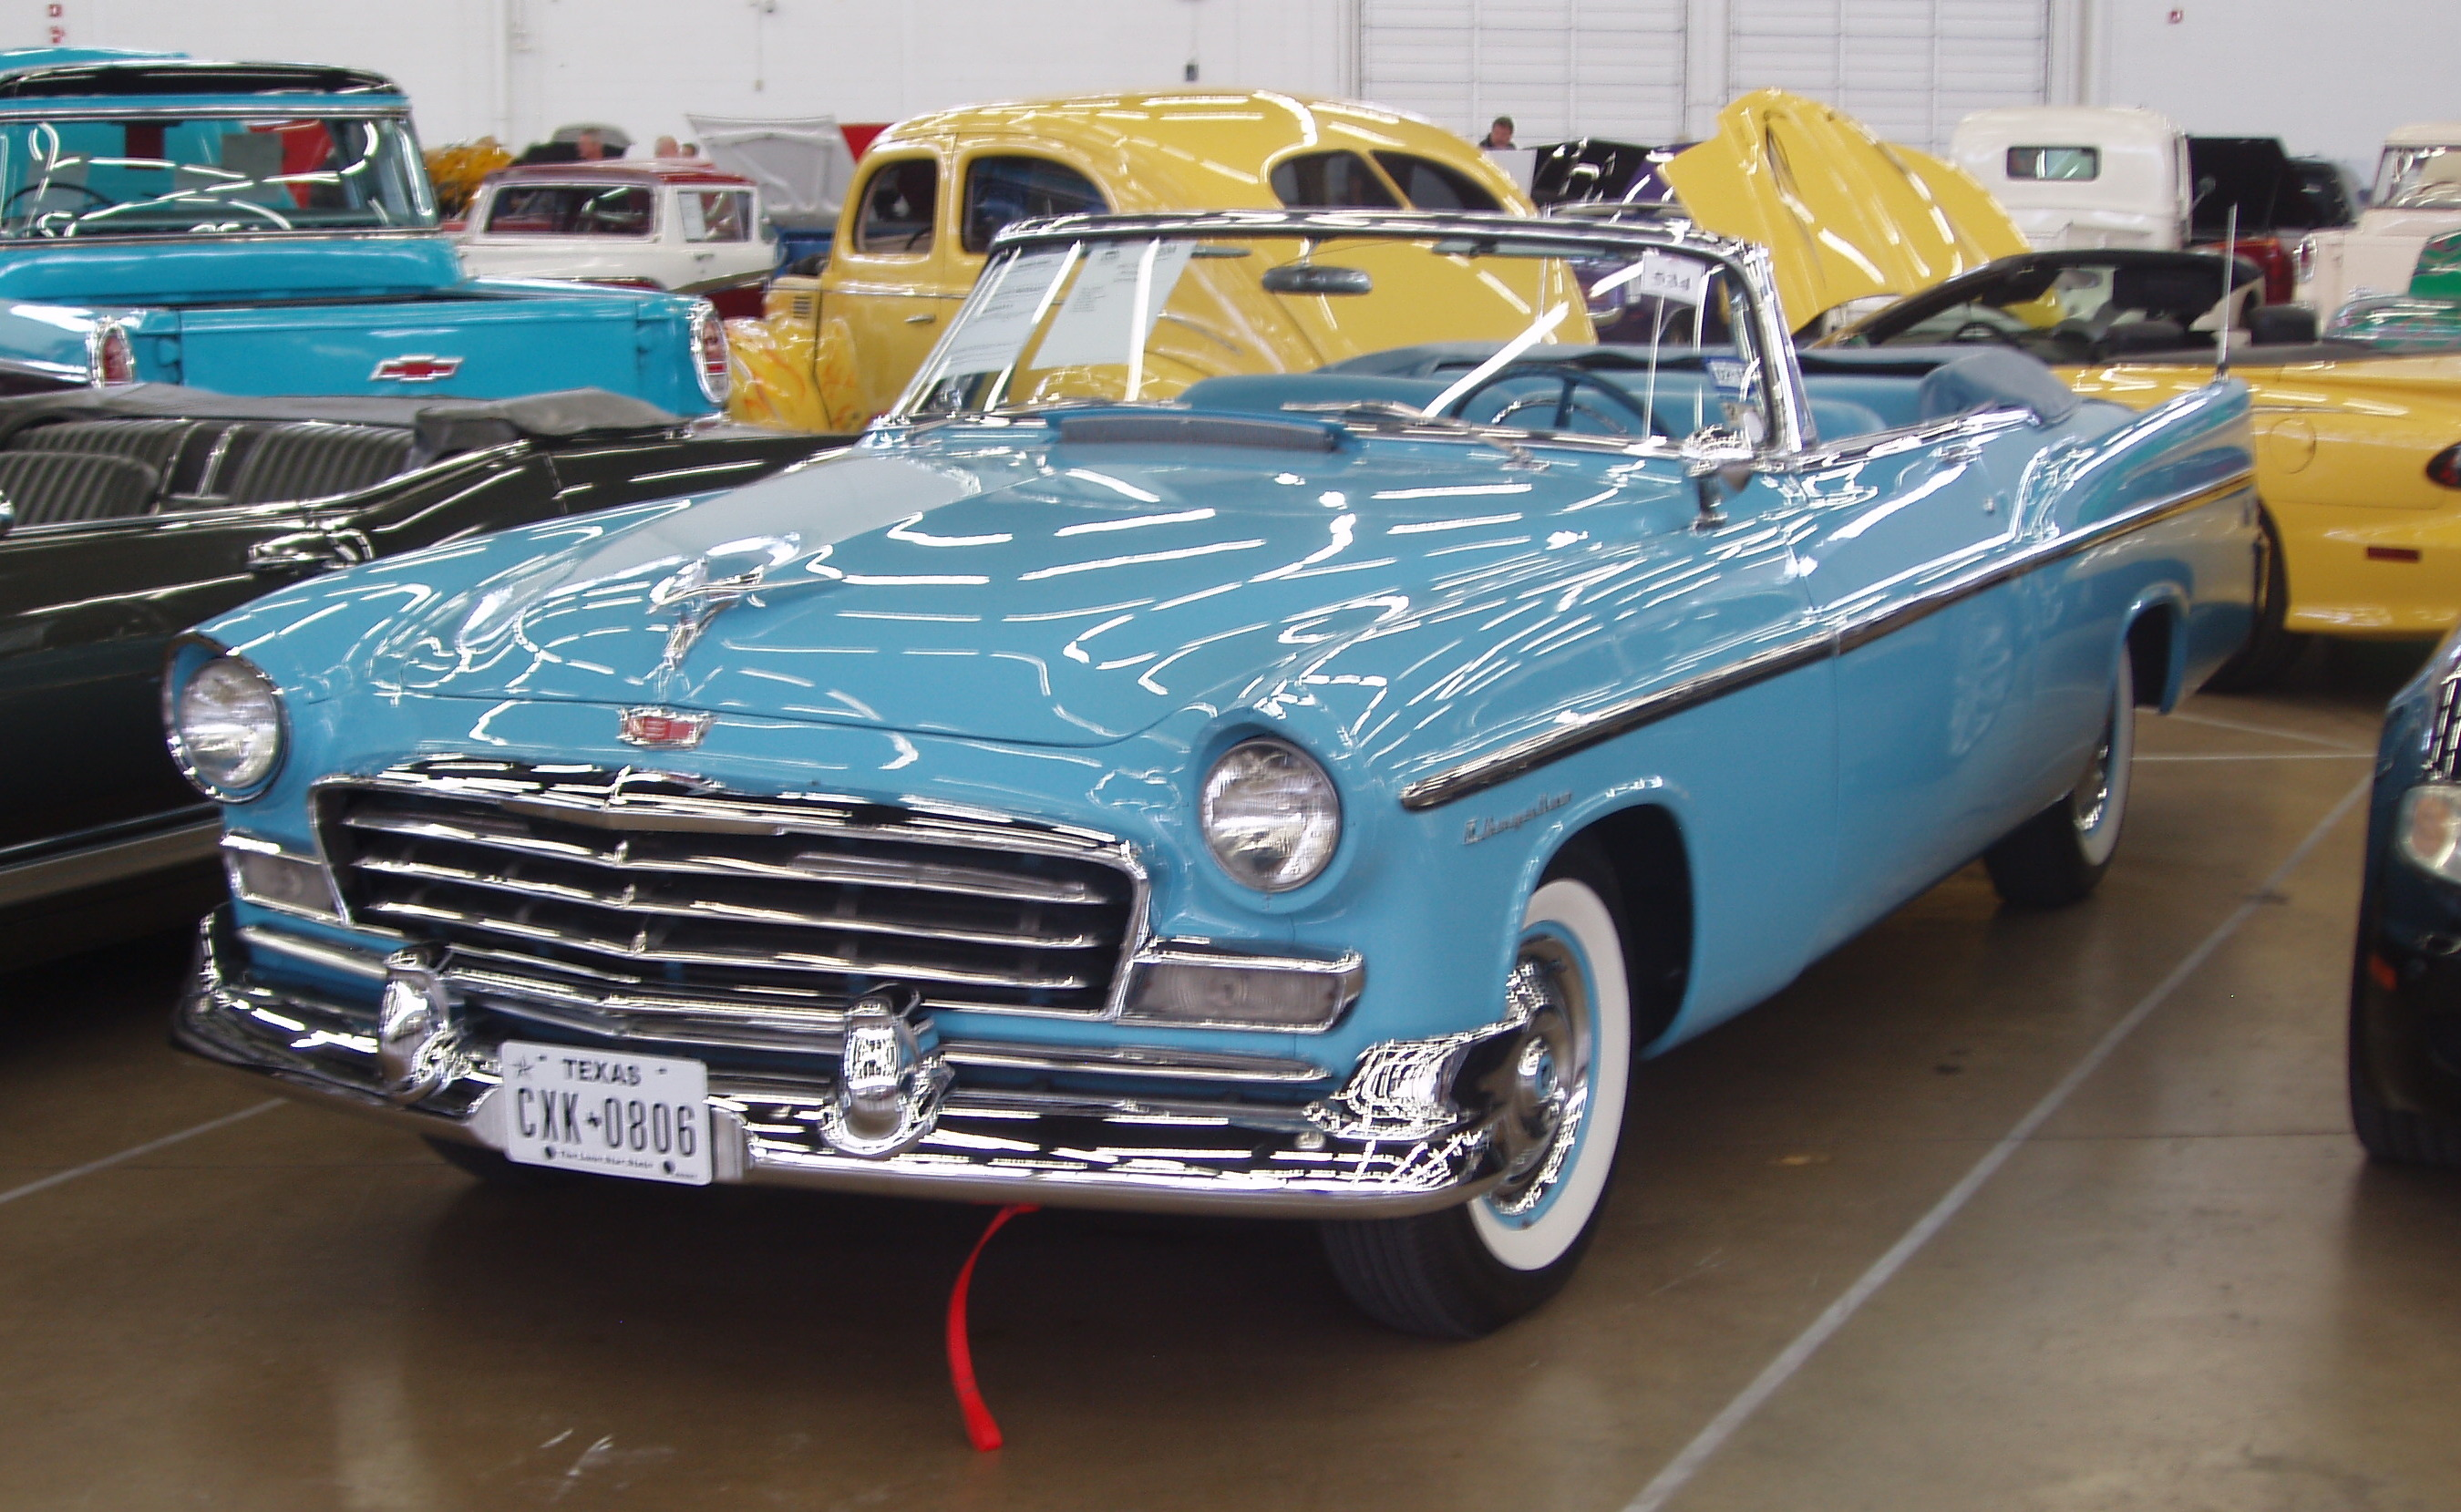 Chrysler New Yorker IV 1955 - 1956 Coupe-Hardtop #3